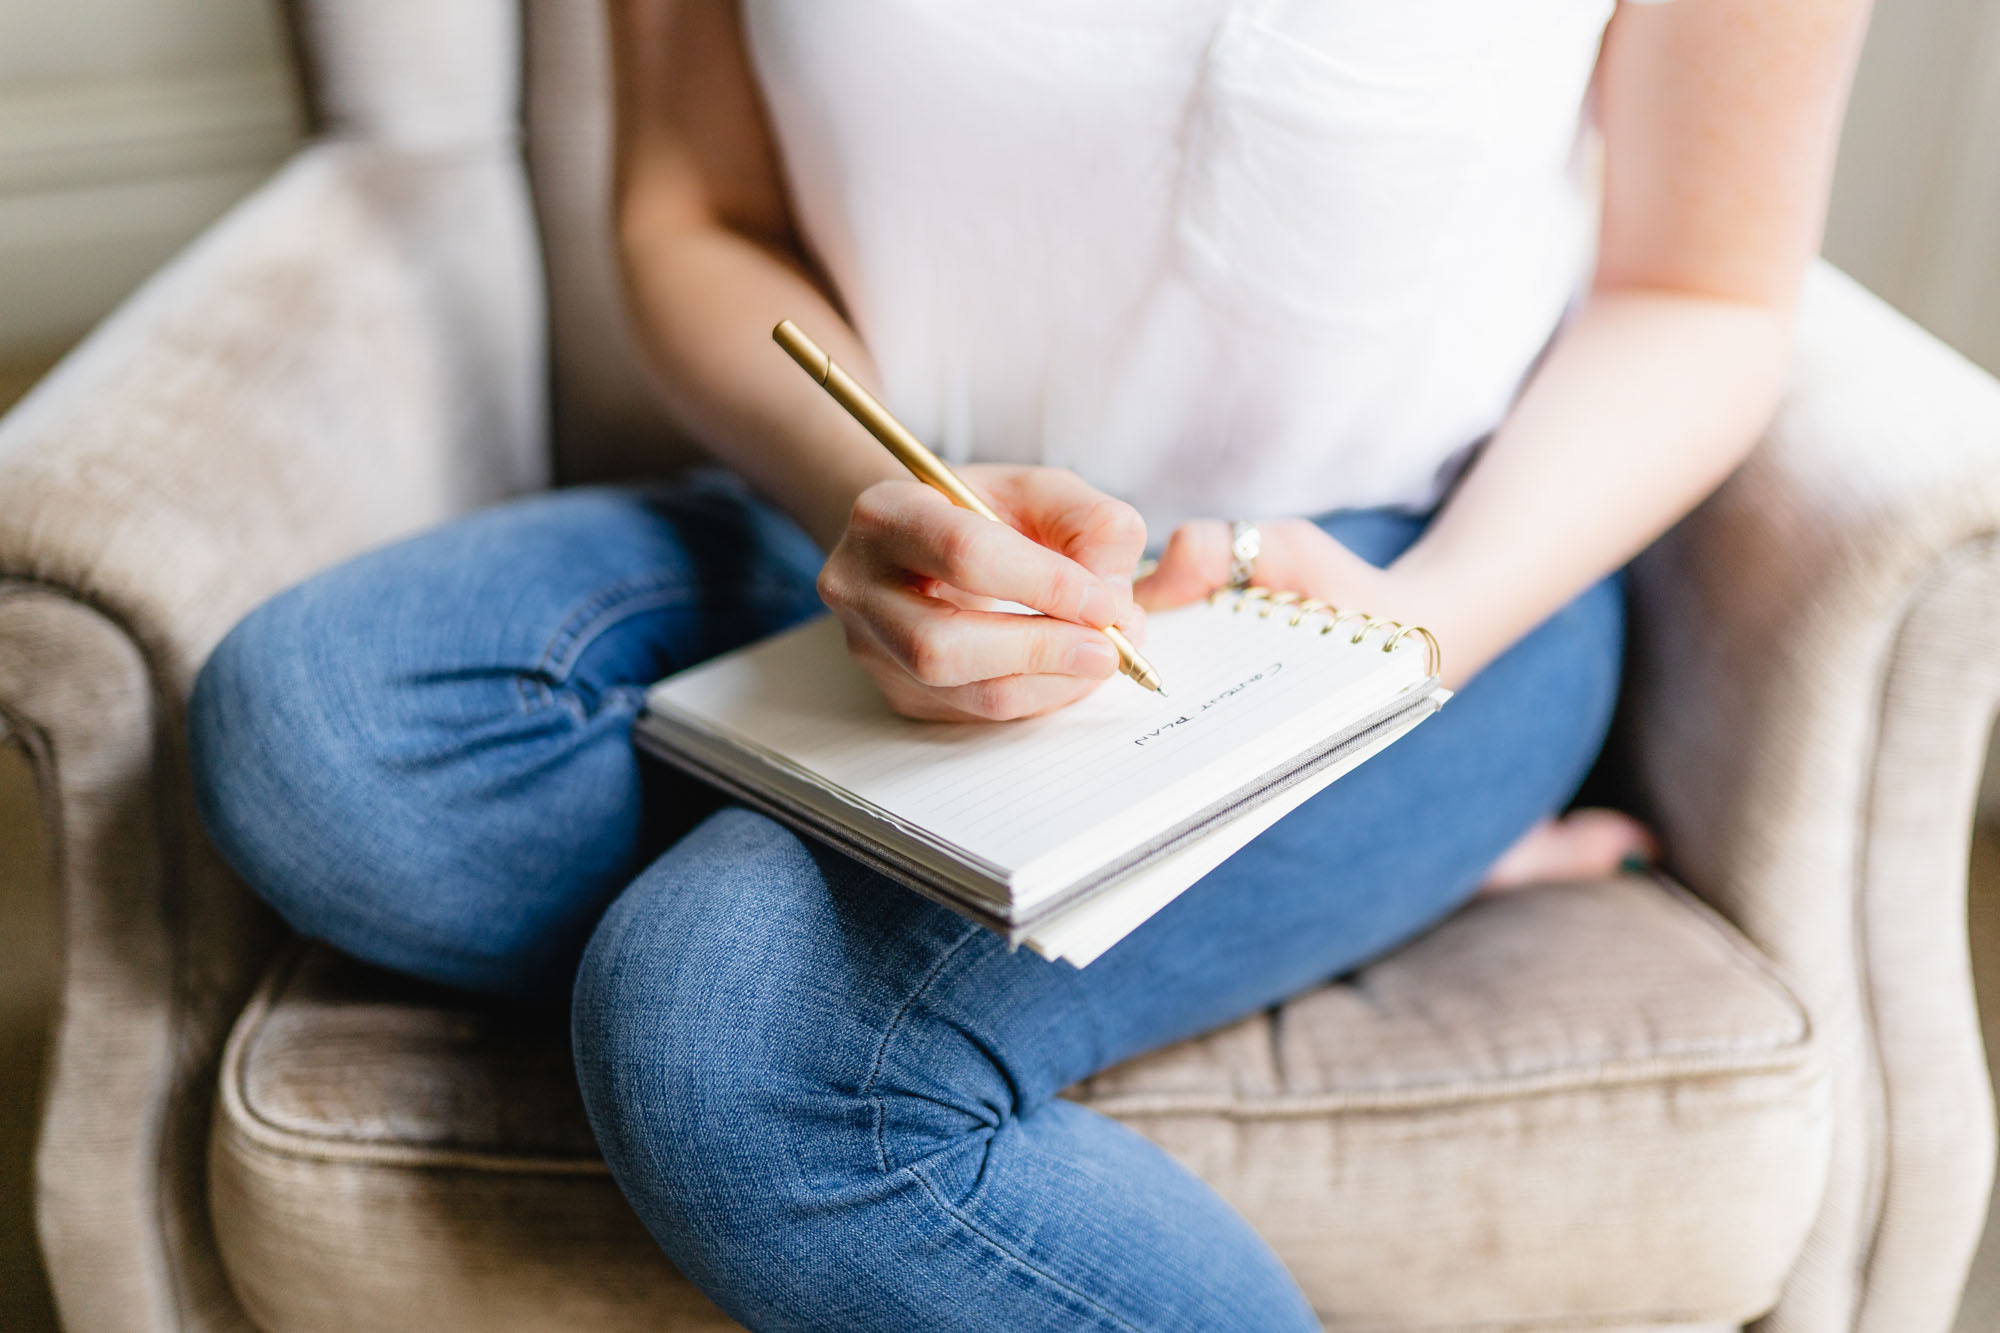 Woman wearing a white top and jeans sitting on a brown sofa with a notebook and pencil in hand. Her face isn't visible.